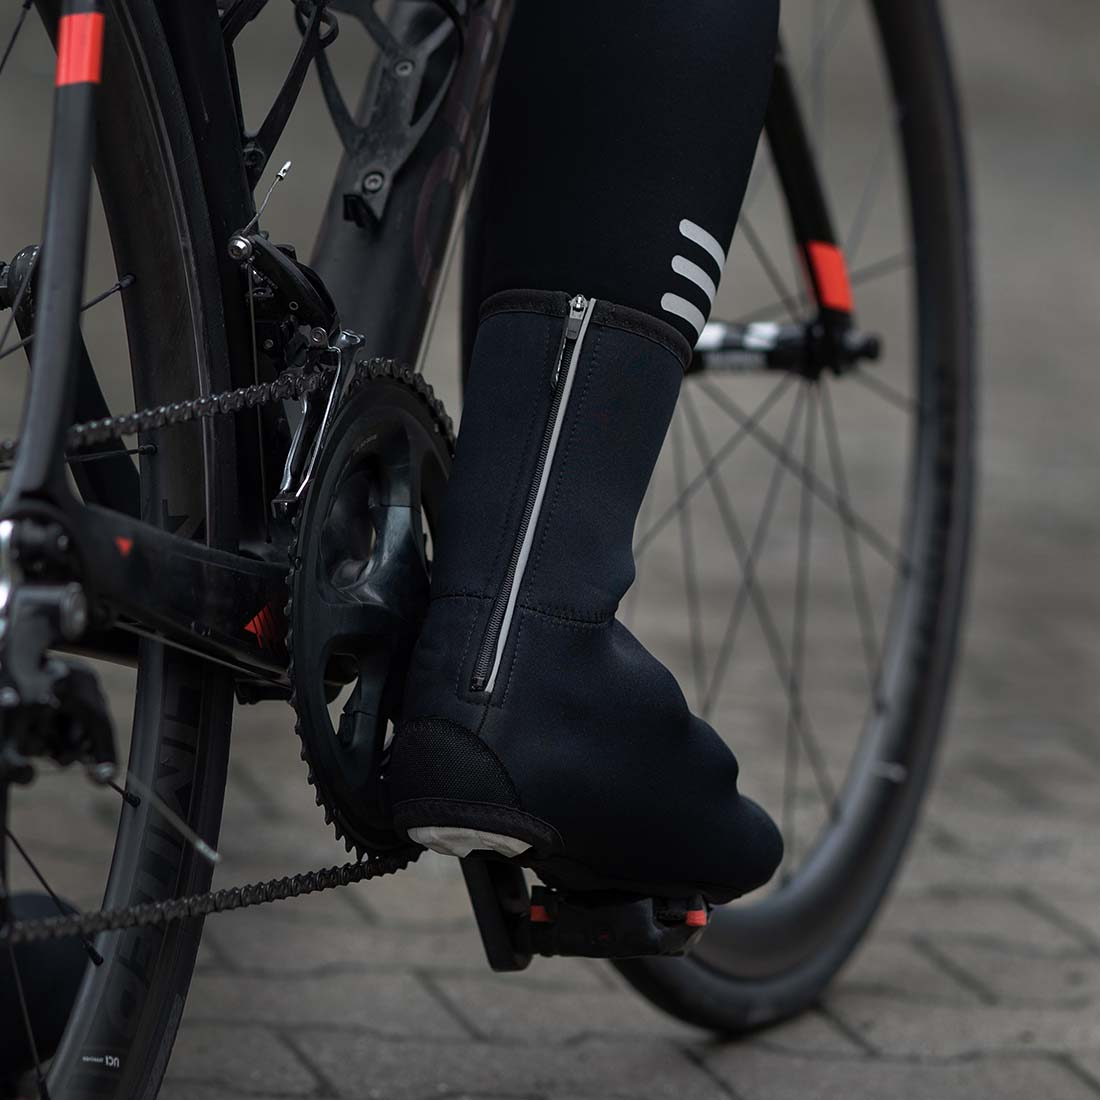 all black neoprene cycling overshoes made by Luxa in Poland